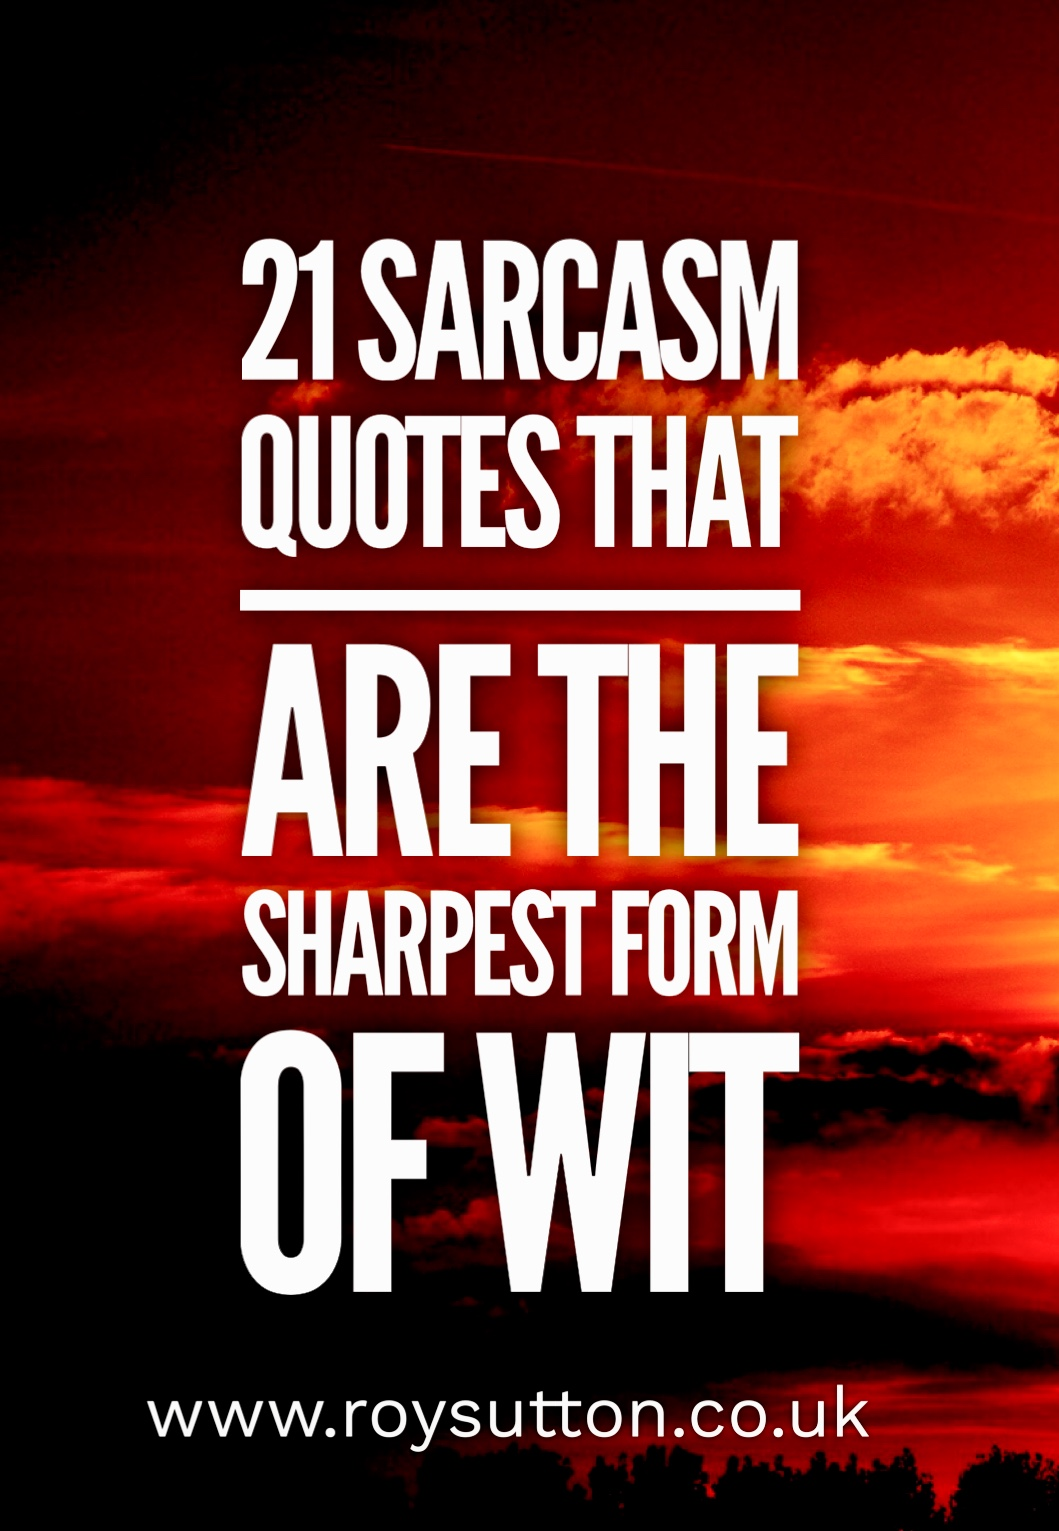 Sharp facebook quotes